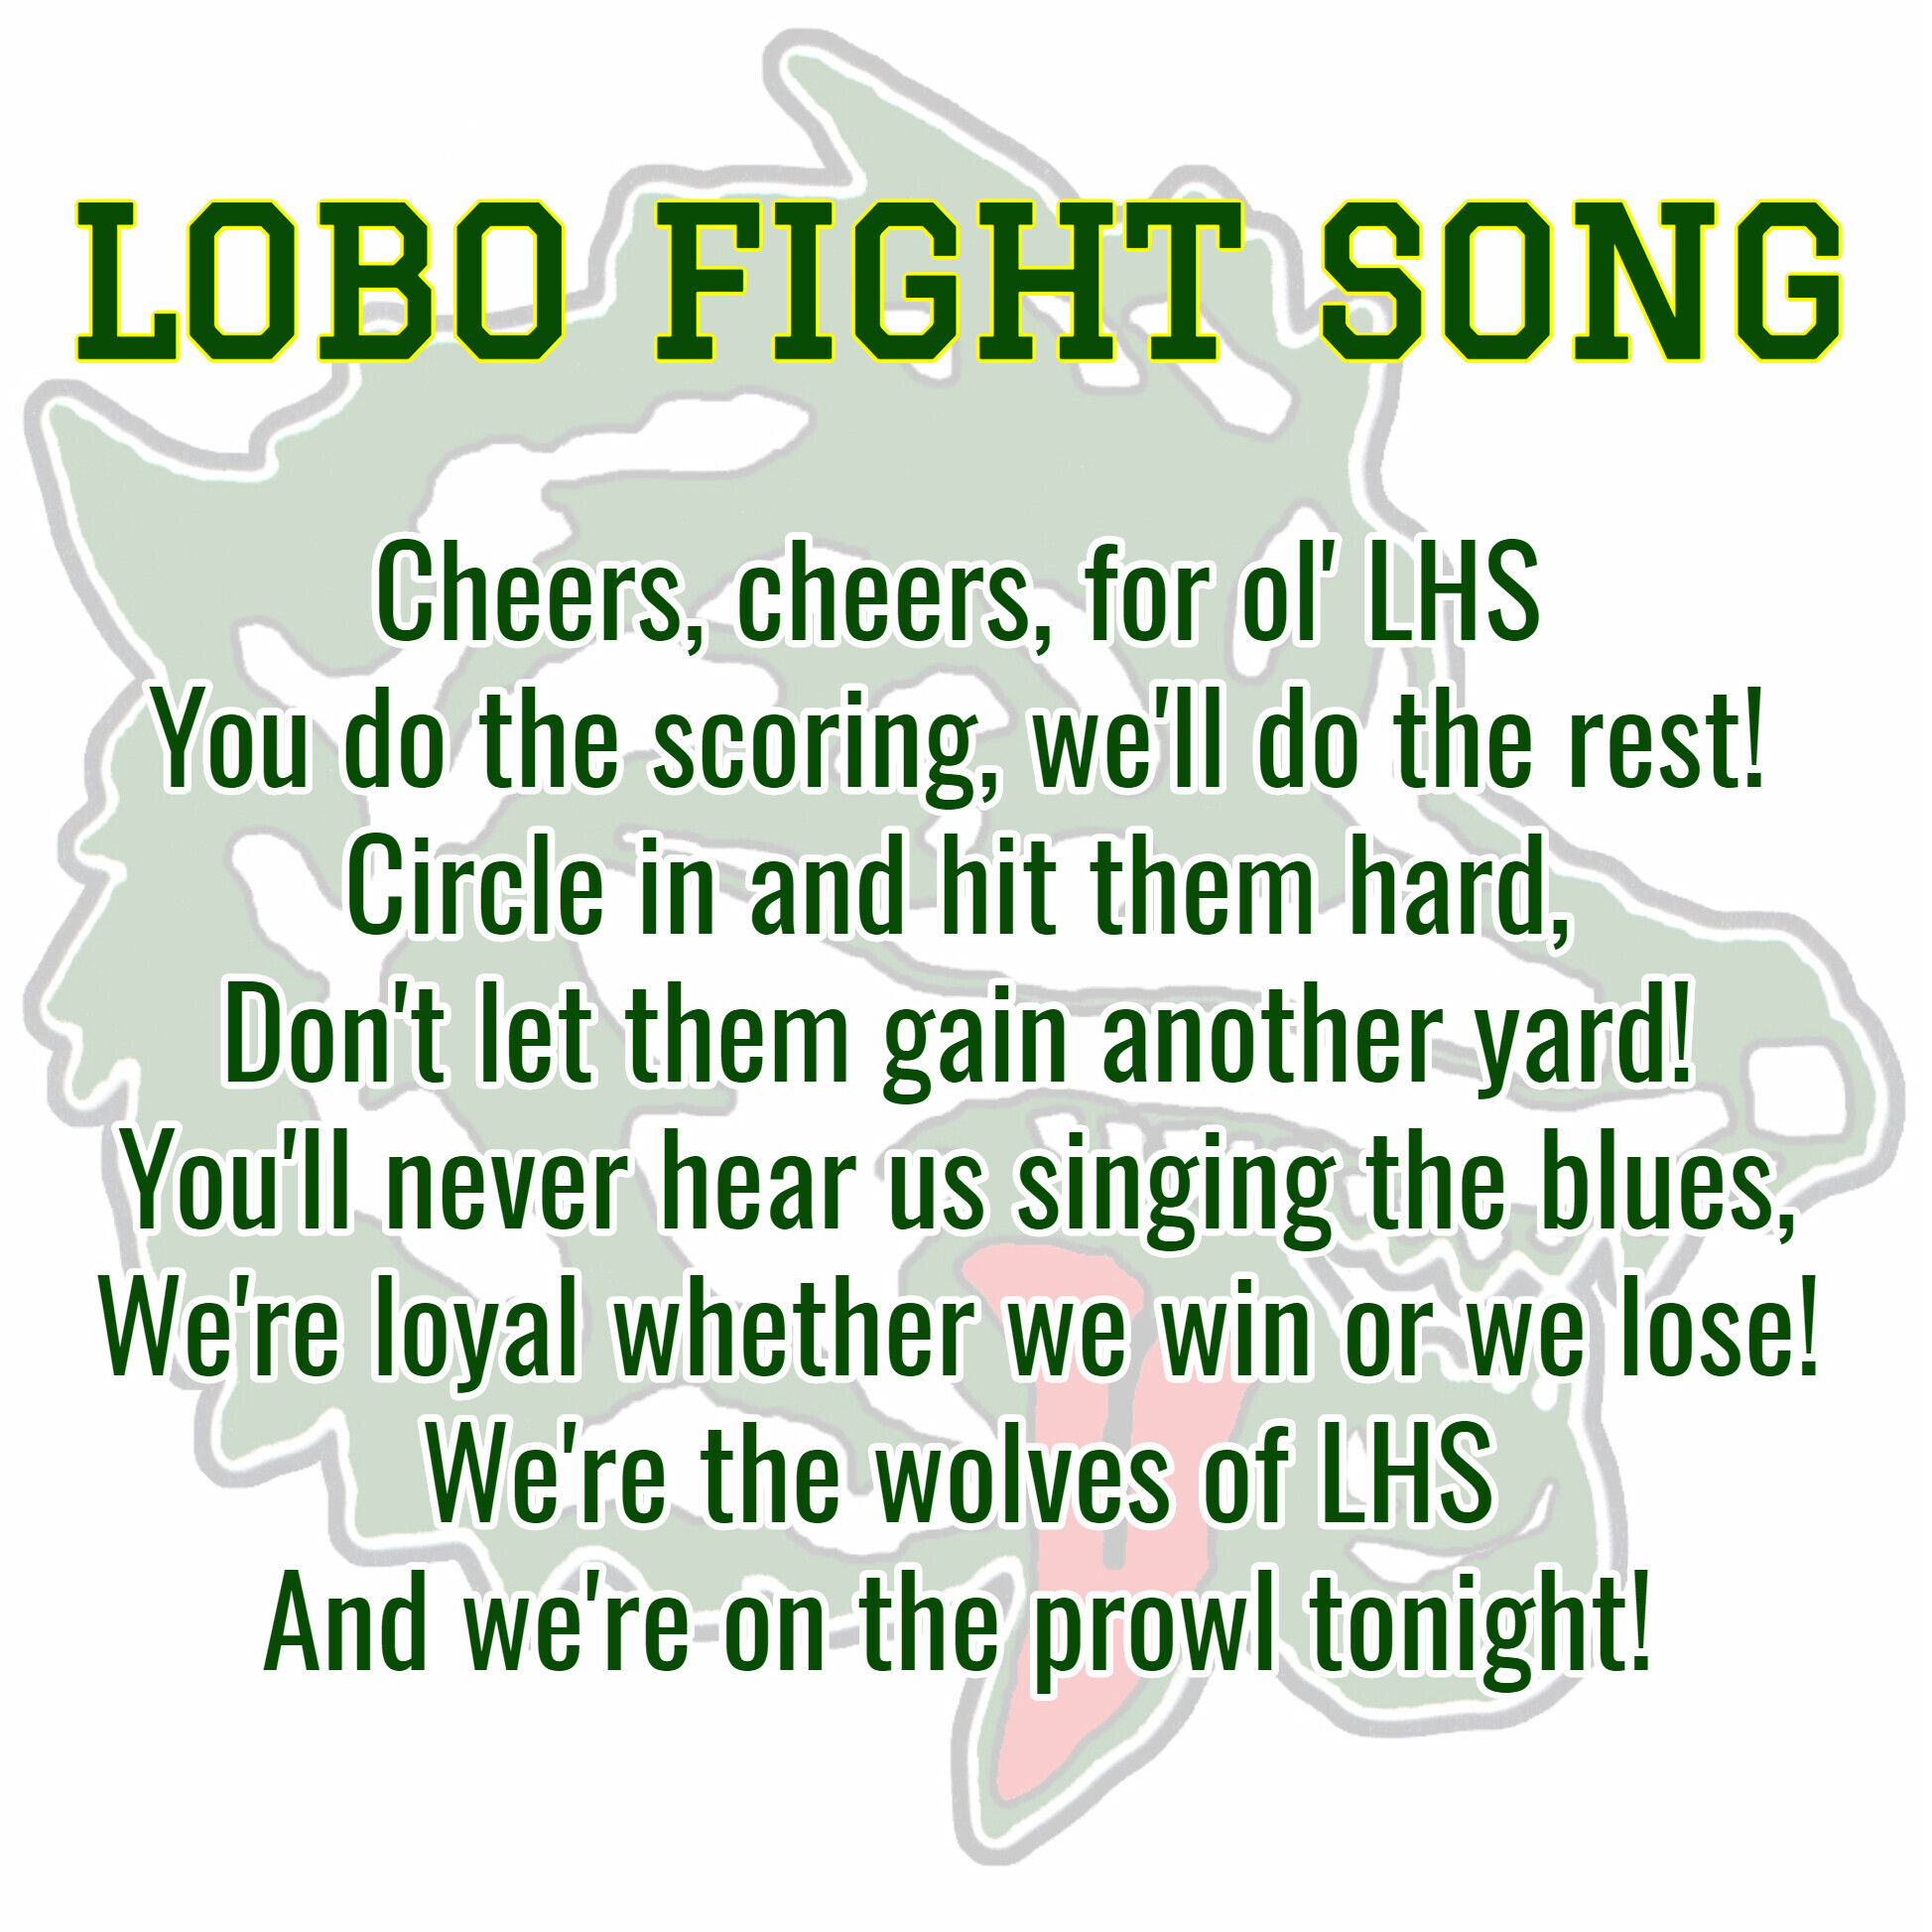 LONGVIEW LOBO FIGHT SONG:  Cheers cheers for ol' LHS, you do the scoring we'll do the rest! Circle in and hit them hard, don't let them gain another yard! You'll never hear us sining the blues, we're loyal whether we win or we lose! We're the Wolves of LHS and we're on the prowl tonight!